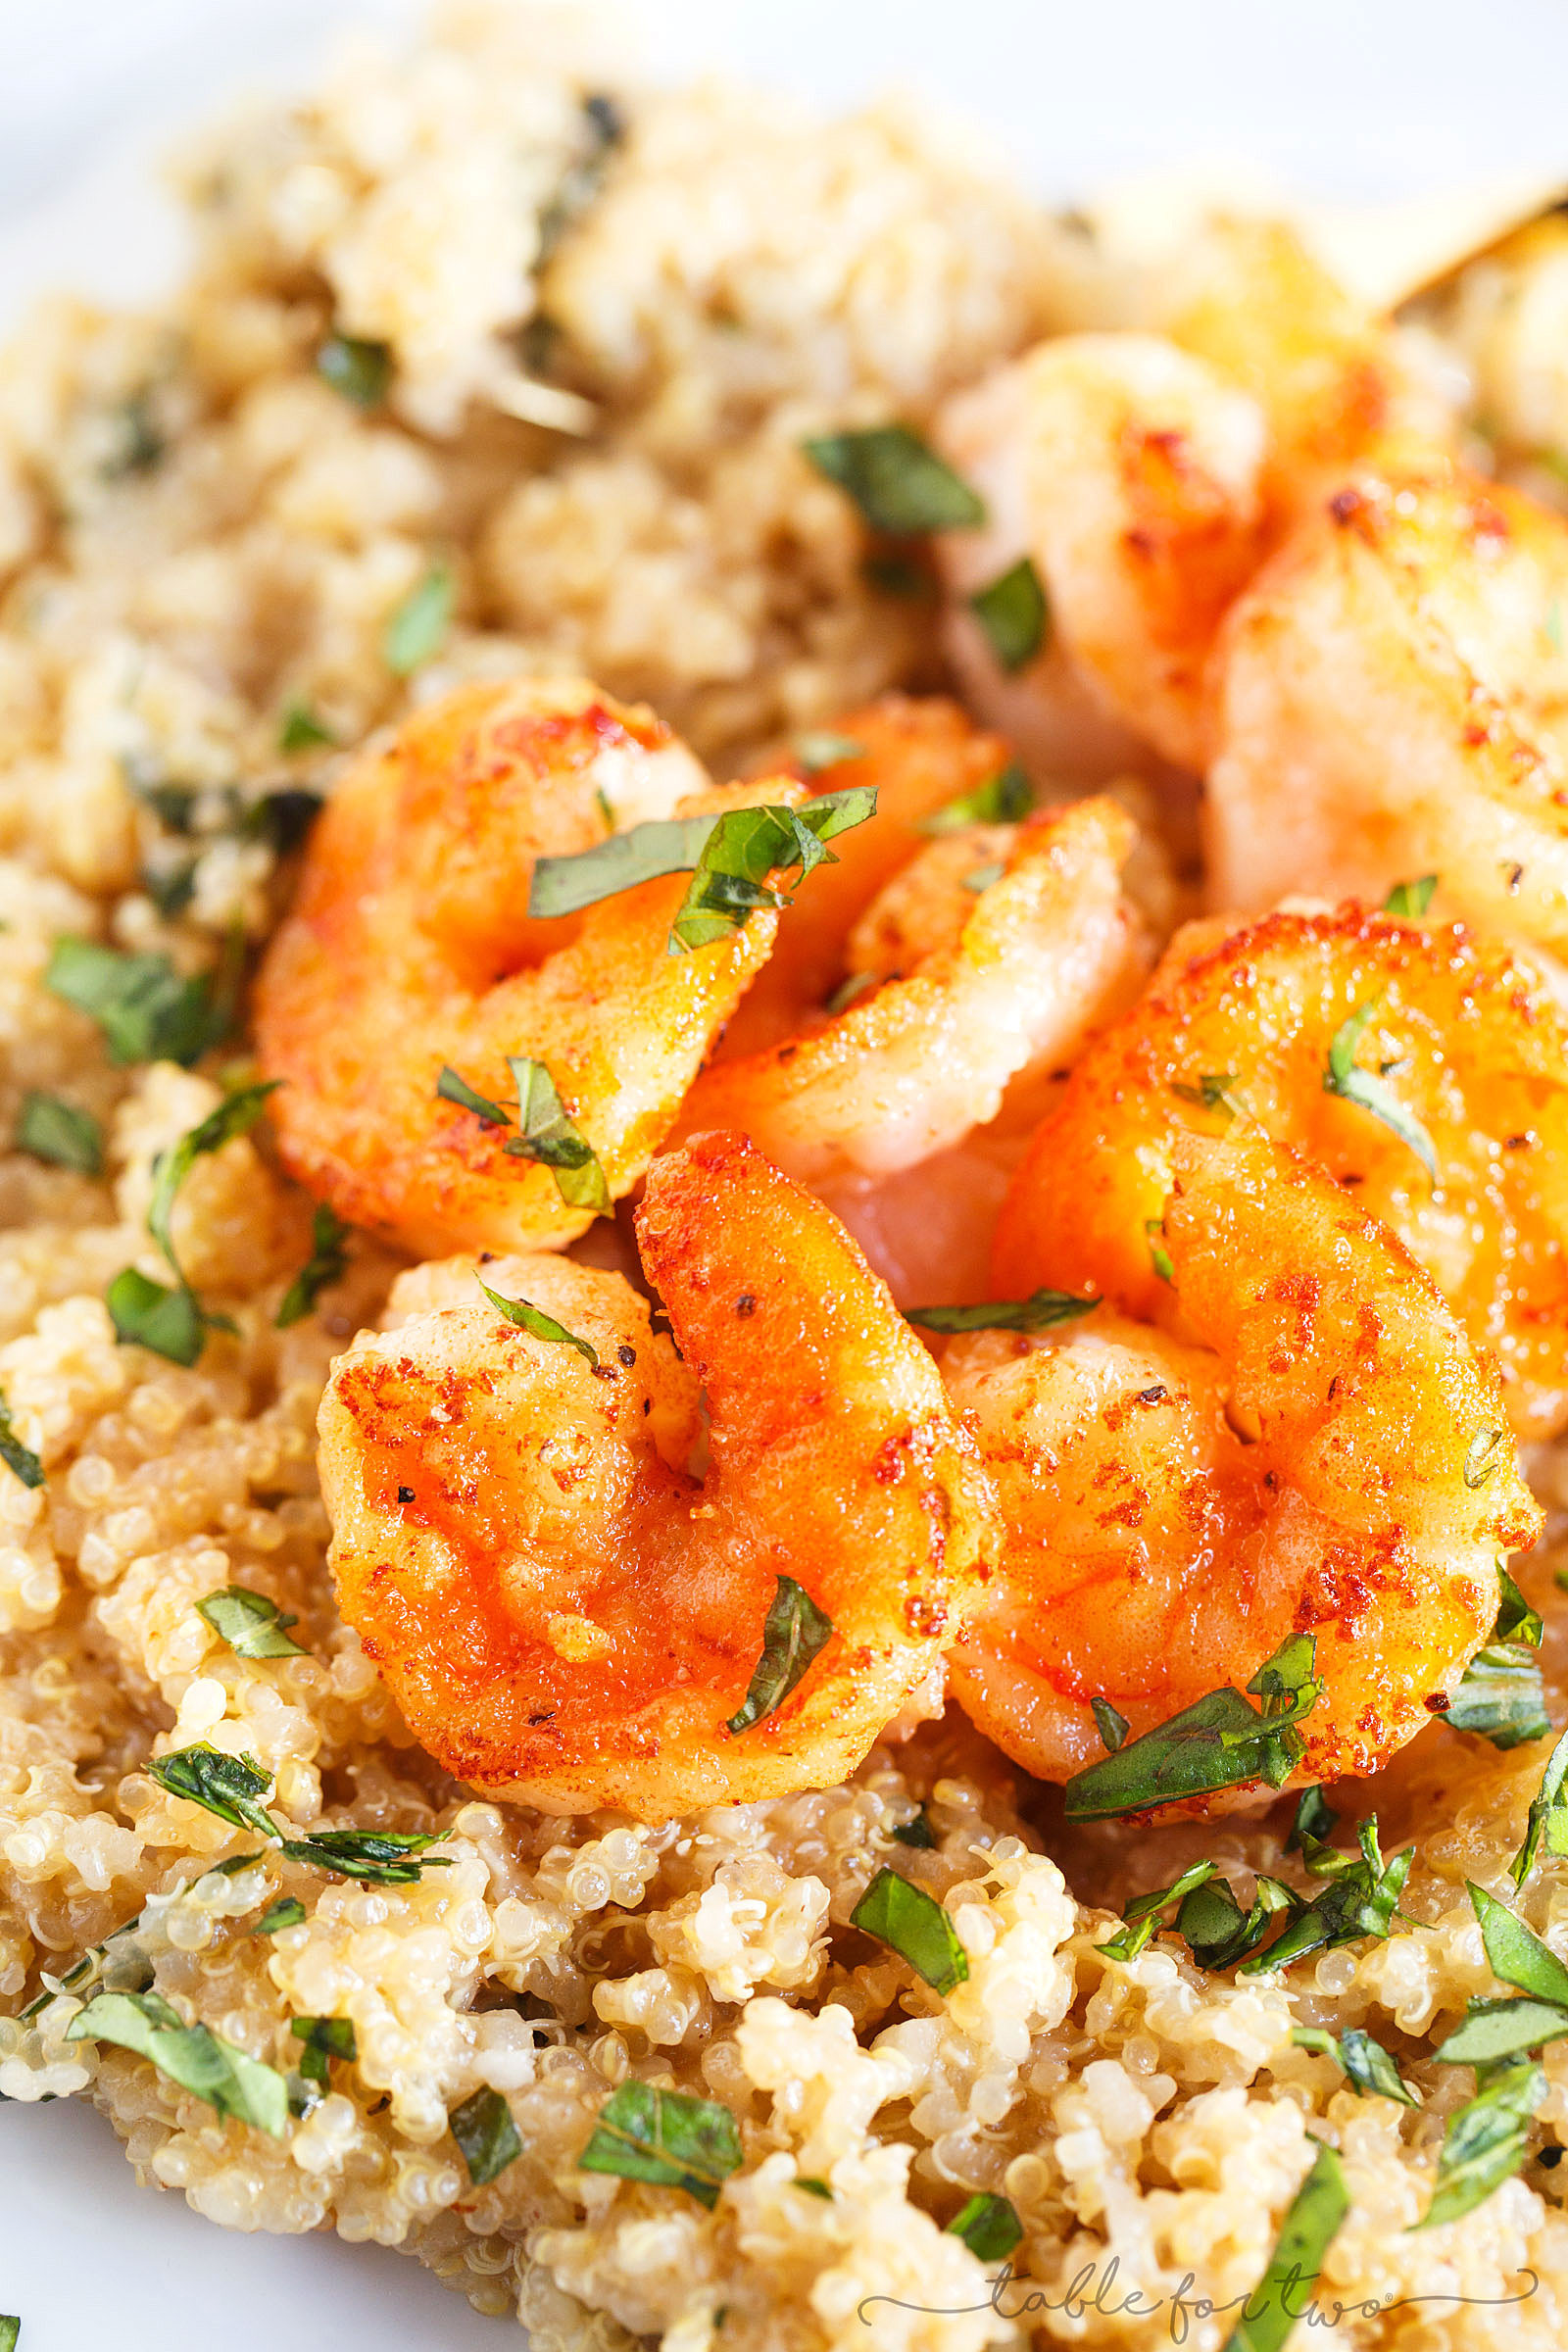 Shrimp And Quinoa  Garlic Butter Shrimp and Quinoa Table for Two by Julie